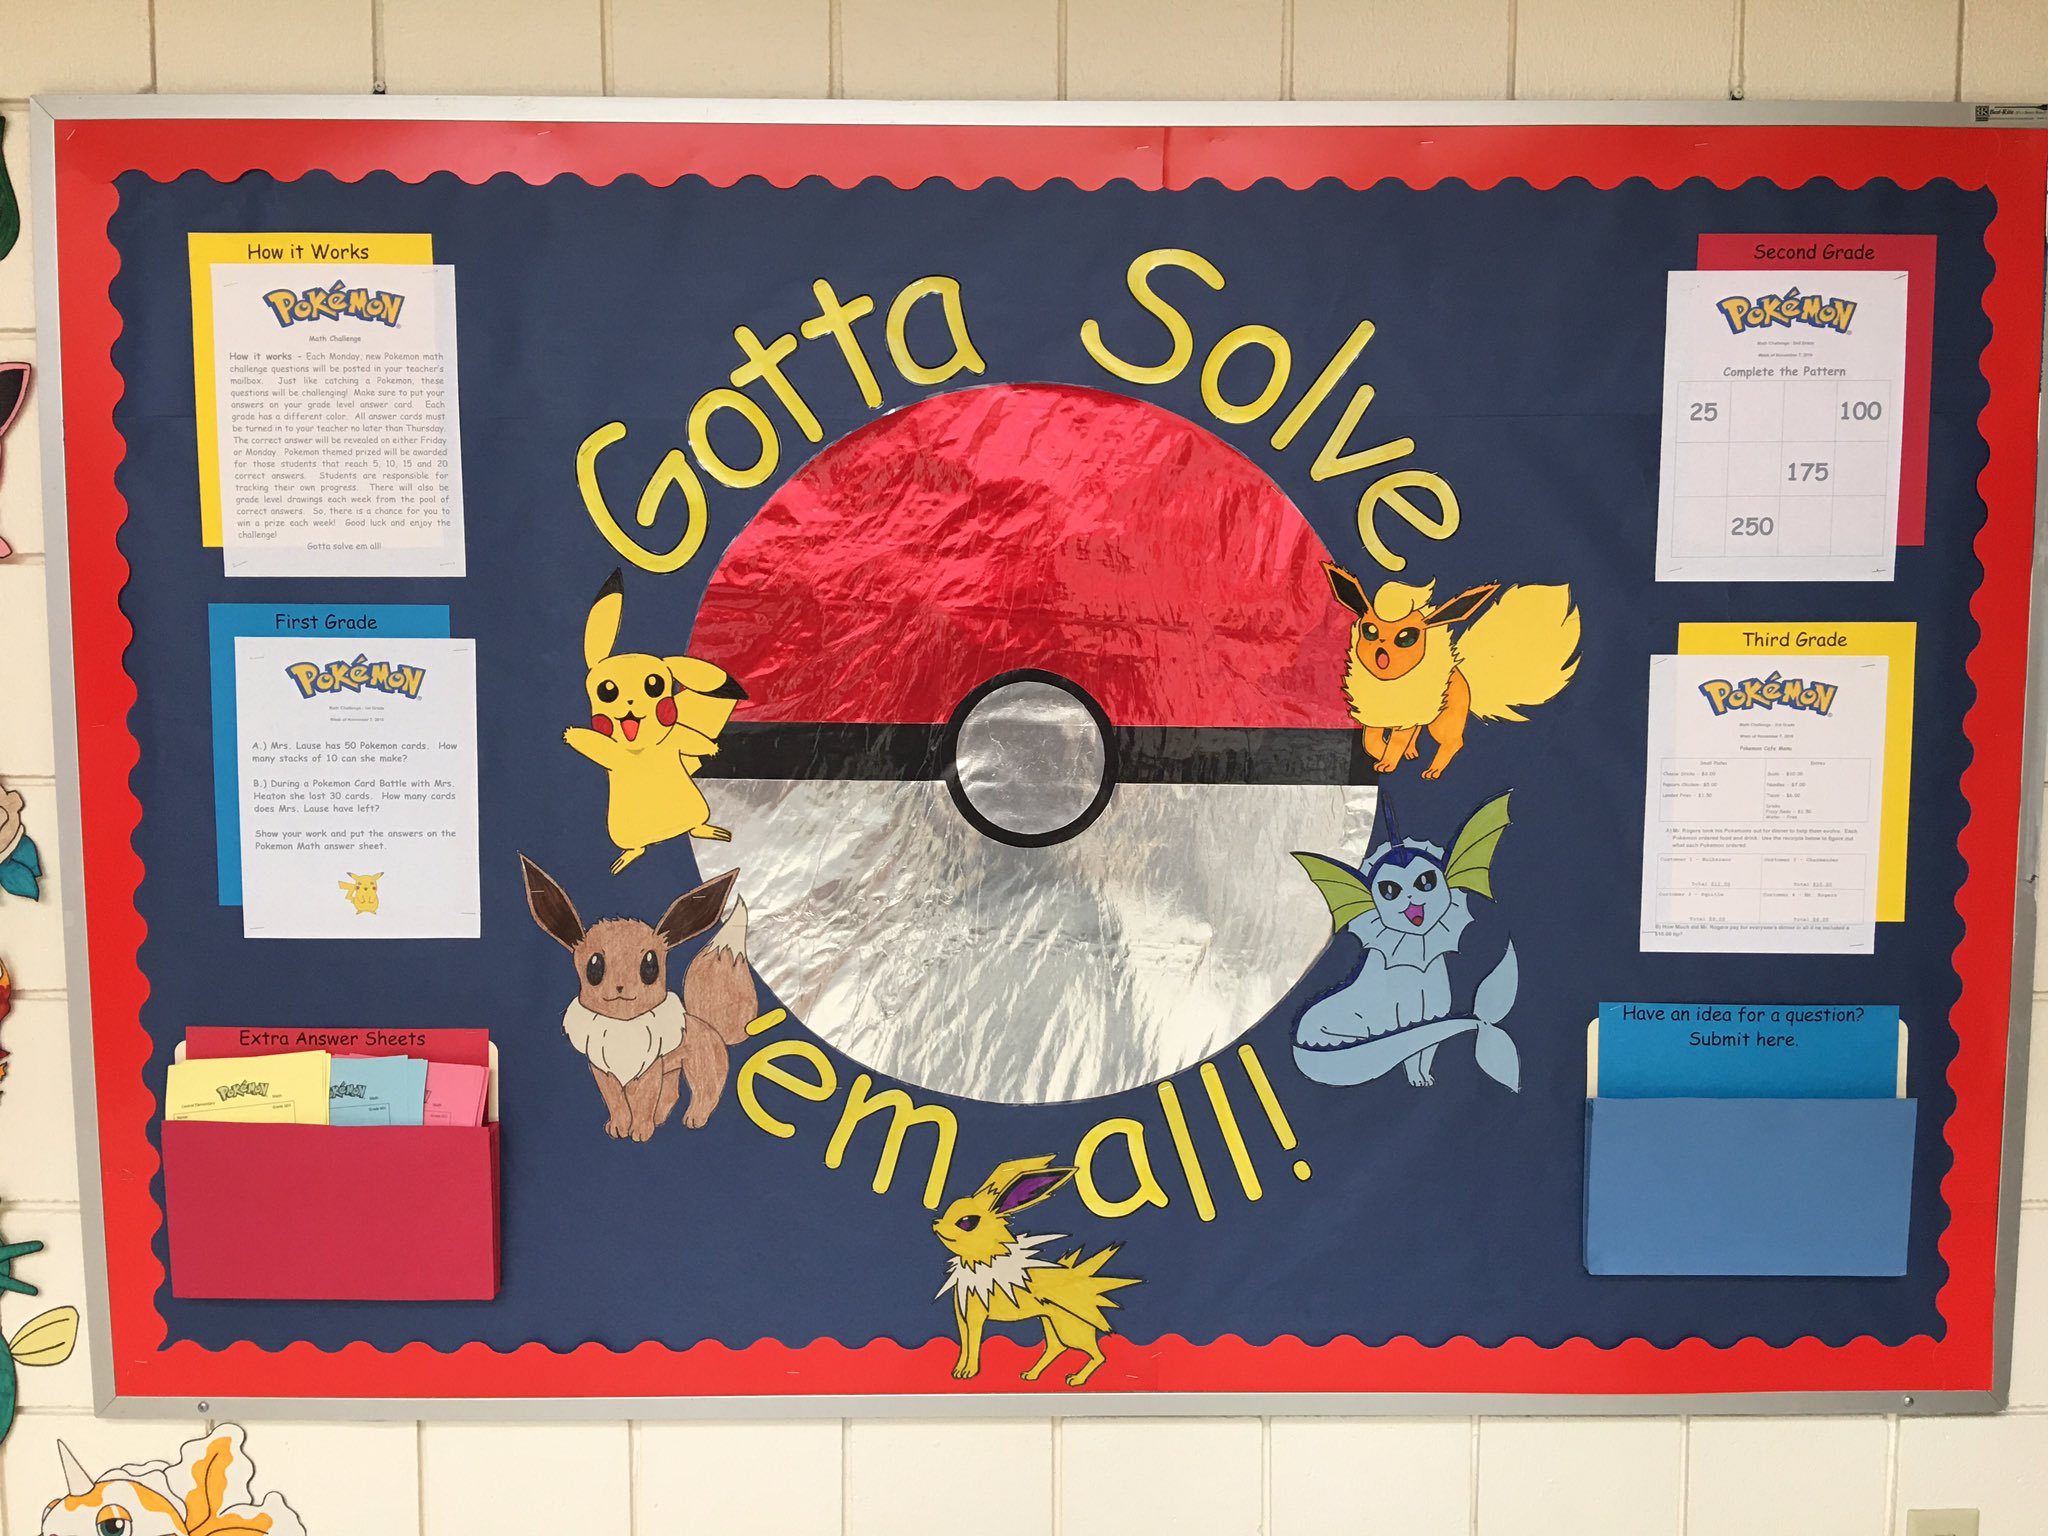 Stoked to start our @Pokemon math challenge Monday! Making math cool again! #VoiceAndChoice #edchat #Mathchat #elemchat #unionrxi https://t.co/gzN059hyX7